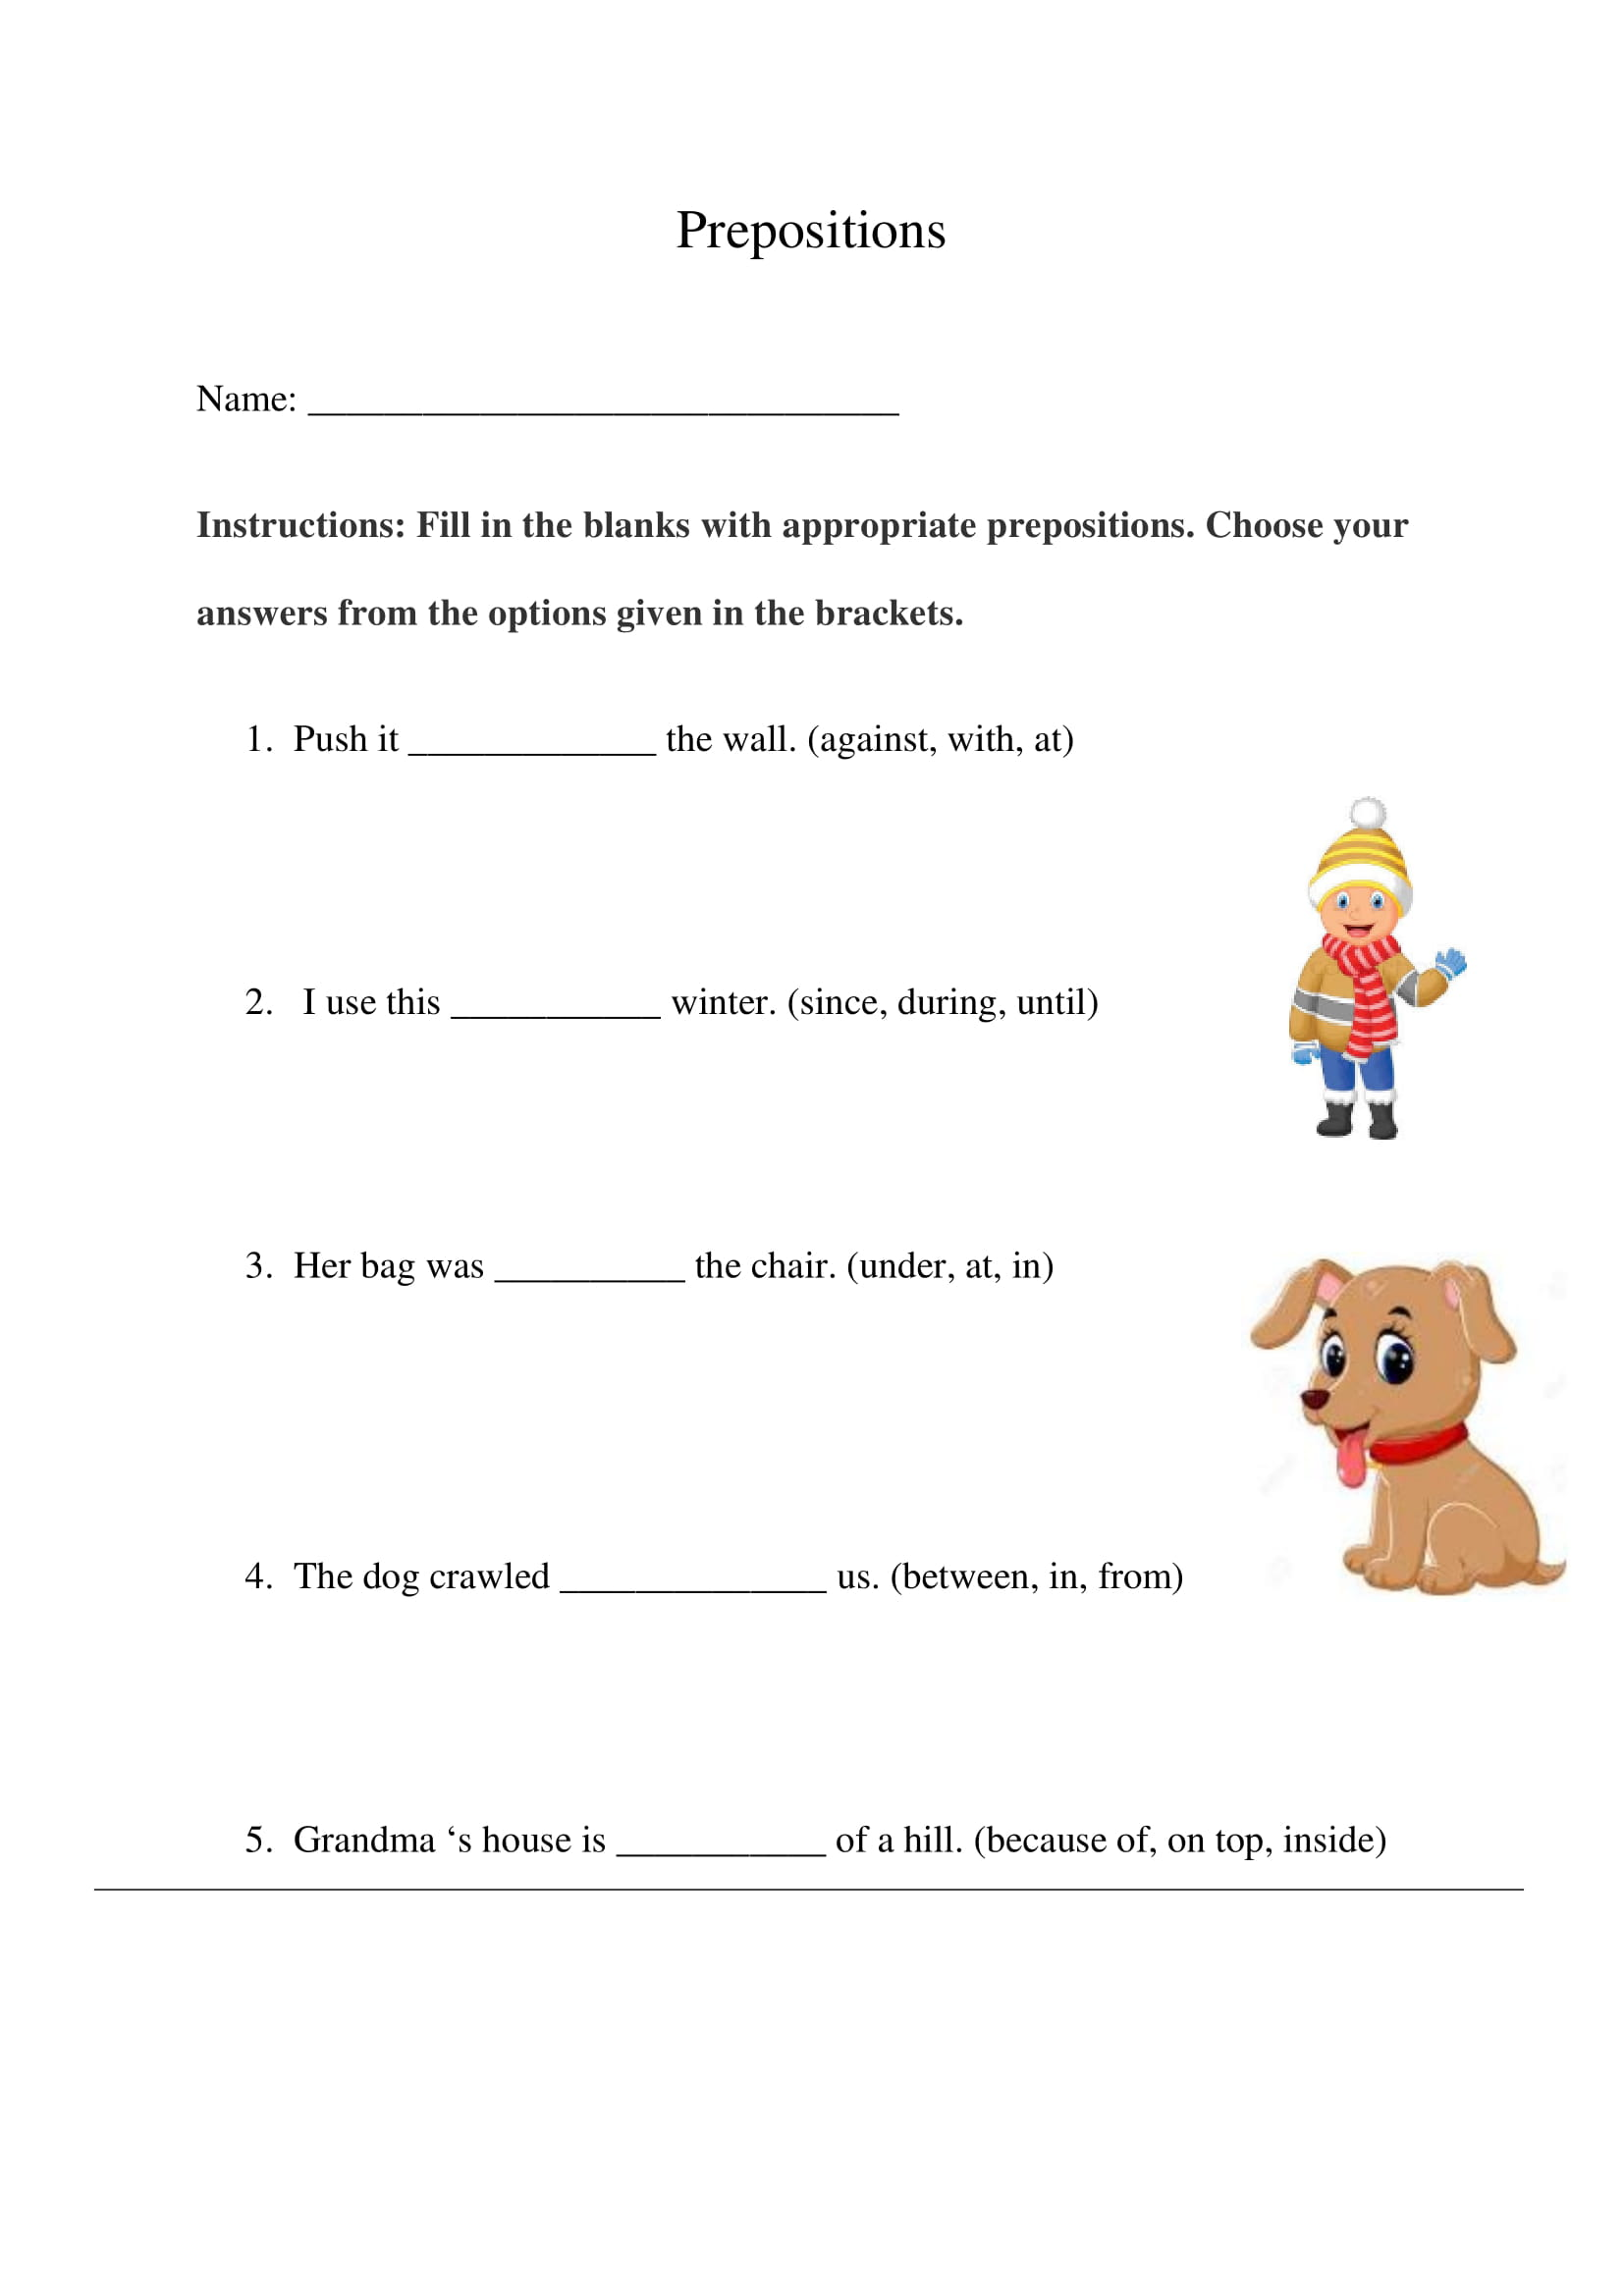 Prepositions Exercise 14